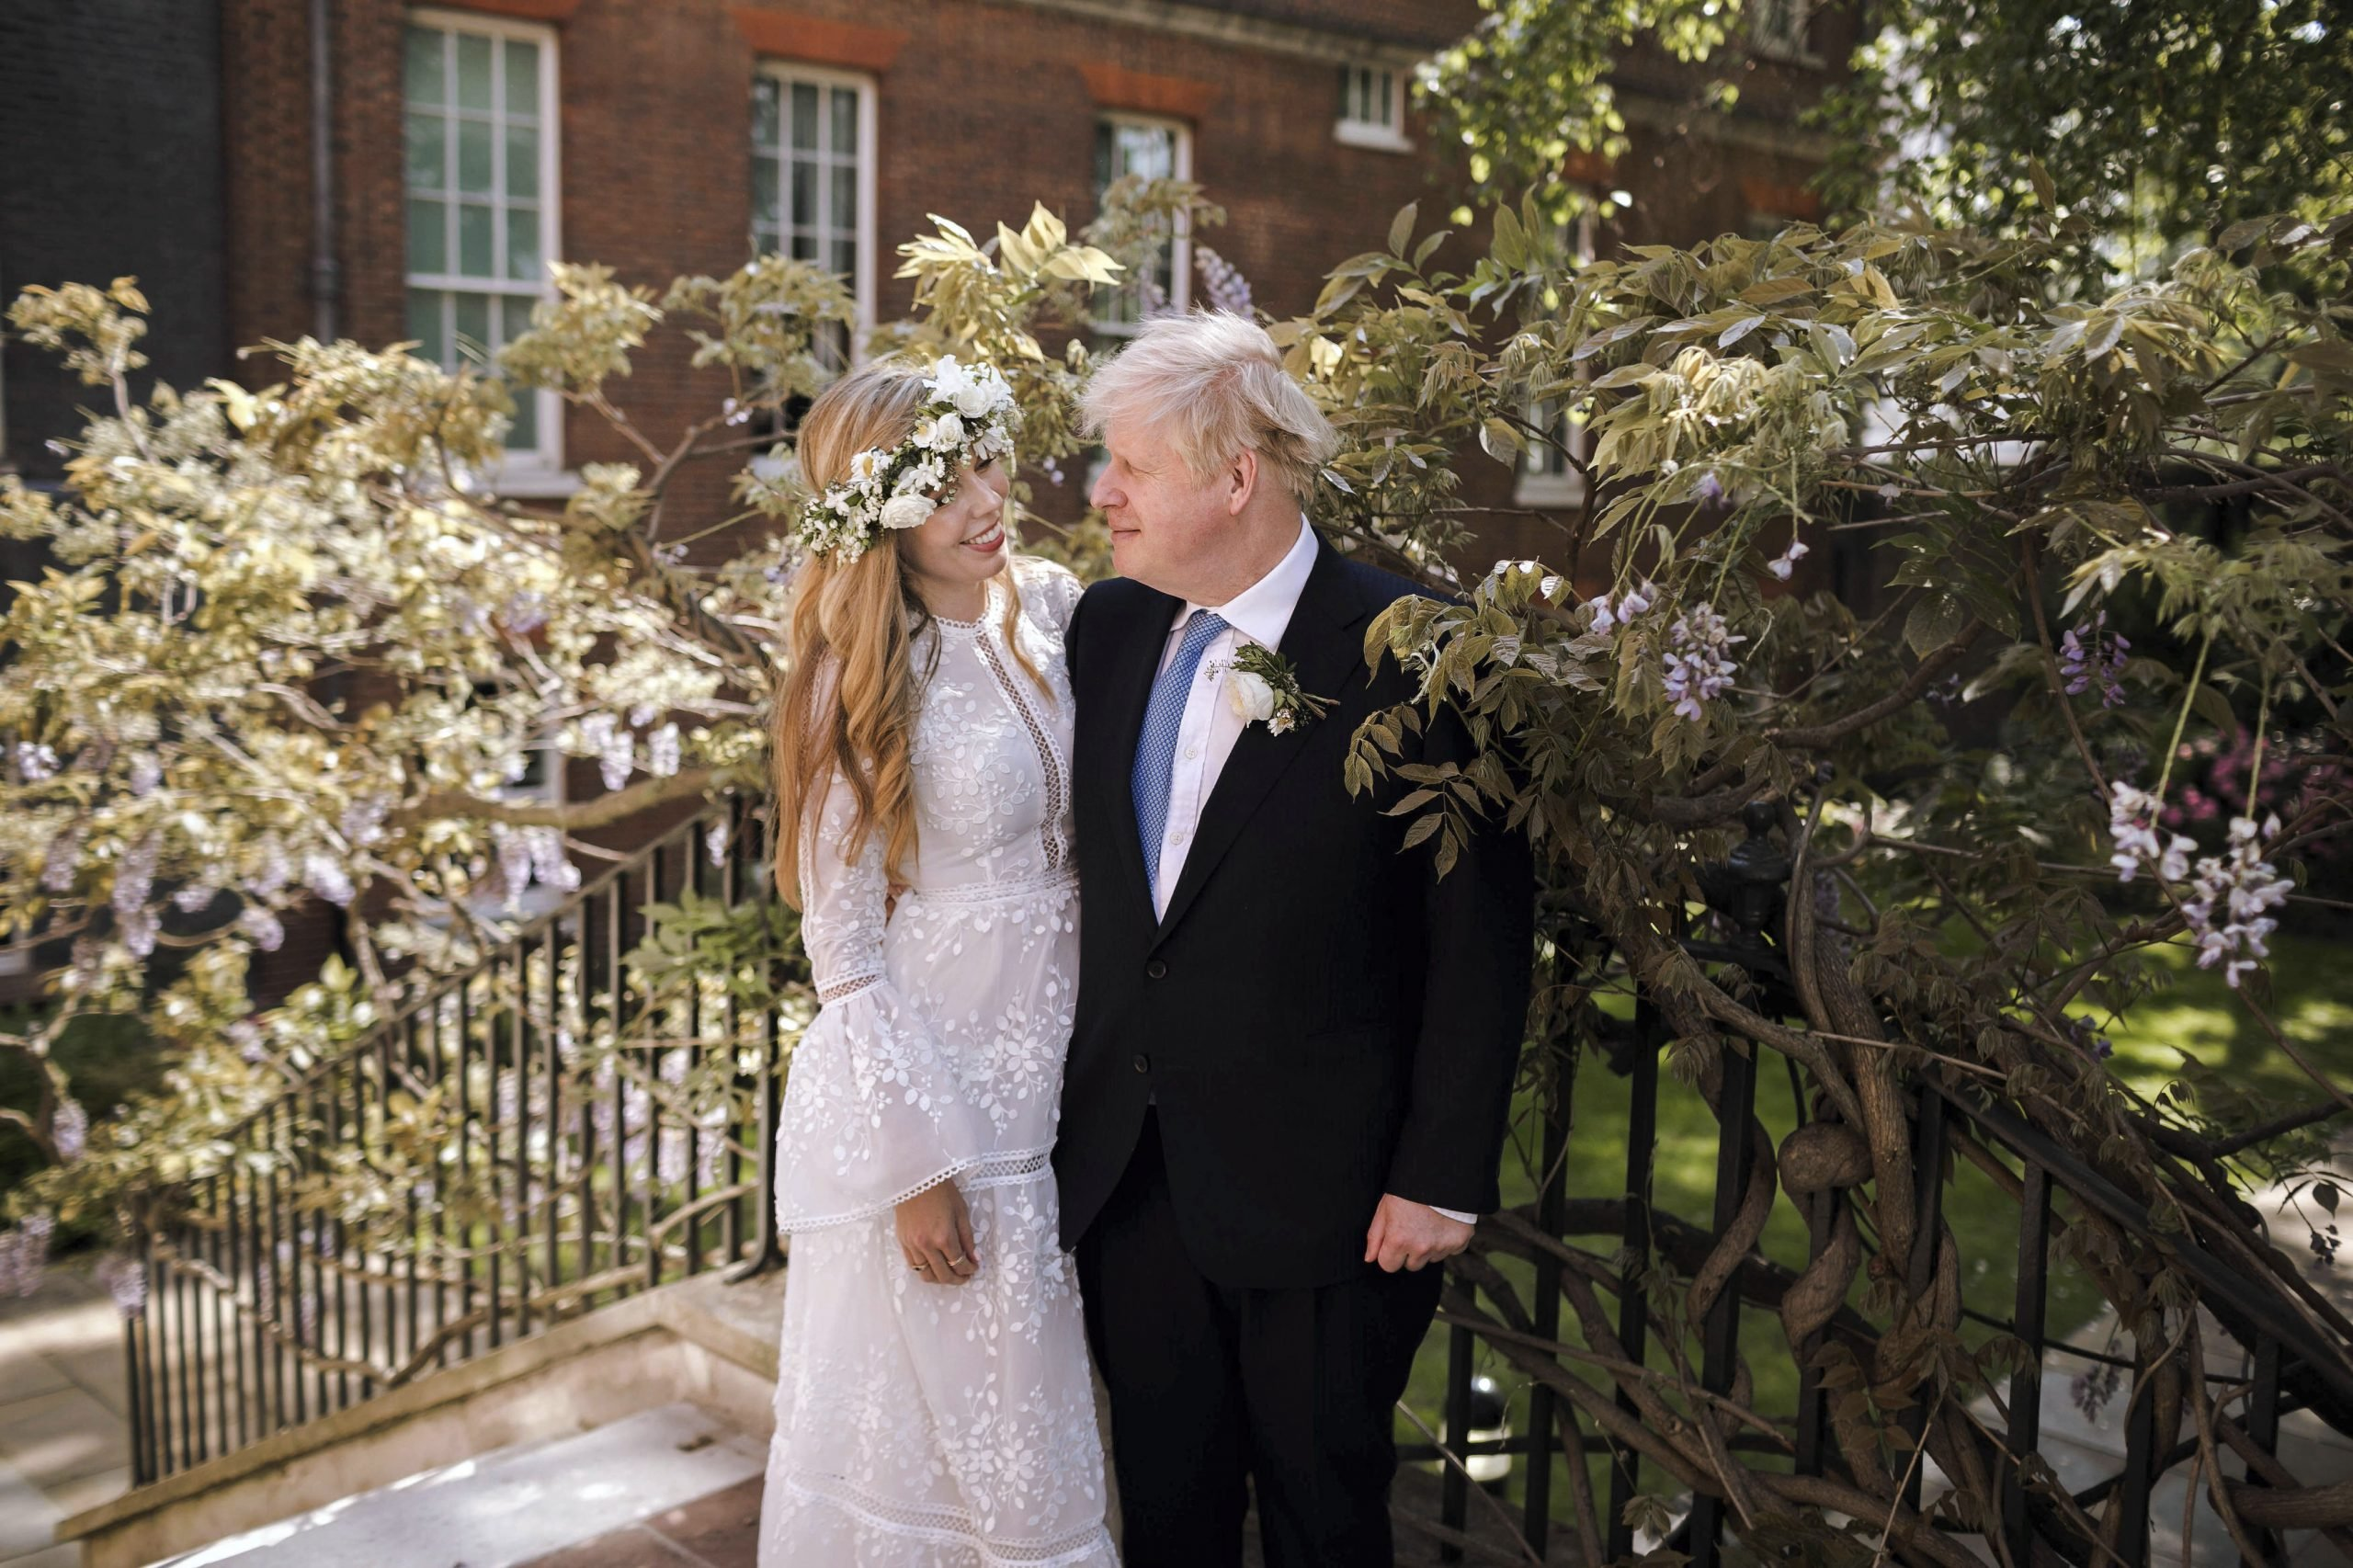 CORRECTING SOURCE TO REBECCA FULTON - In this image released Sunday May 30, 2021, by Rebecca Fulton, Britain's Prime Minister Boris Johnson and Carrie Johnson pose together for a photo in the garden of 10 Downing Street after their wedding on Saturday. Boris Johnson and his fiancée Carrie Symonds are newlyweds, according to an announcement saying they were married Saturday during a small private ceremony in London. (Rebecca Fulton via AP)